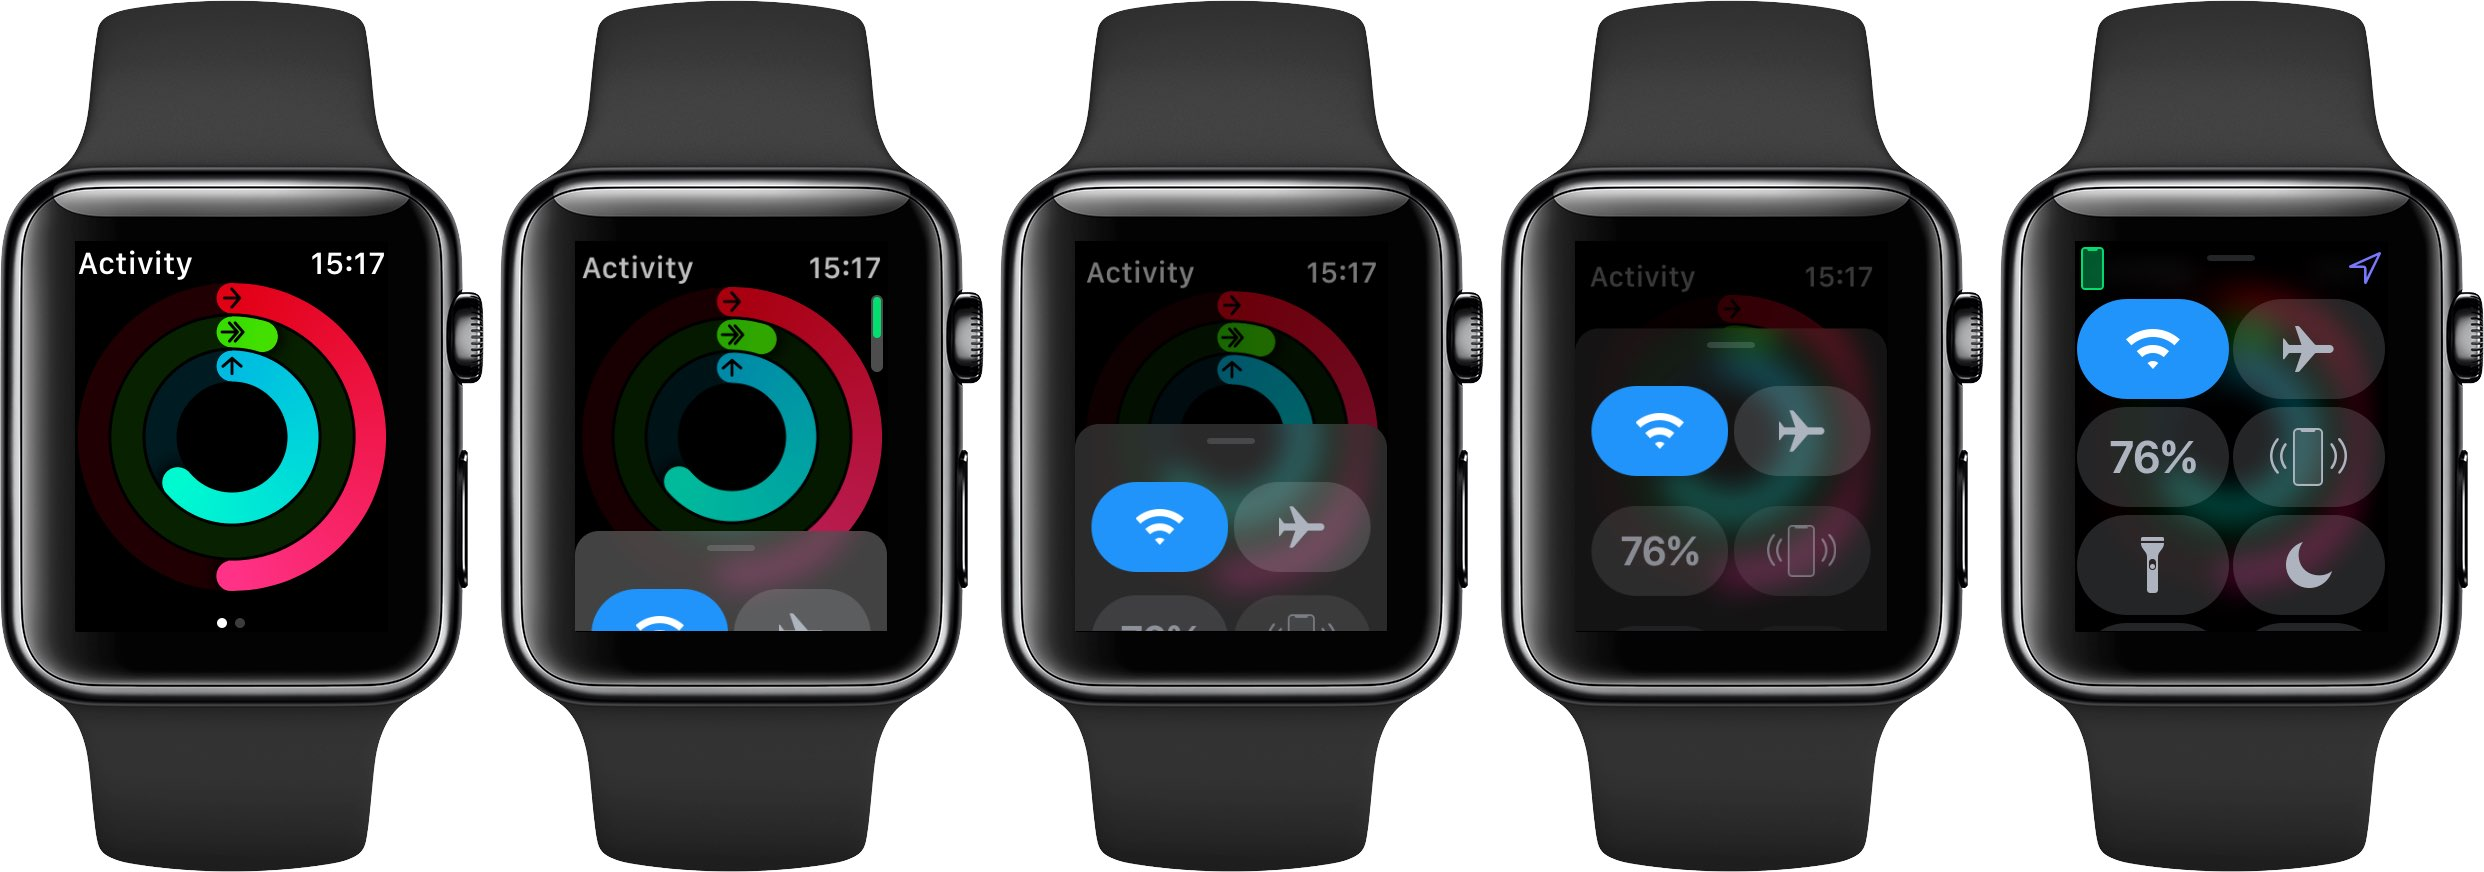 Apple Watch Control Center displayed inside the Activity app on watchOS 5